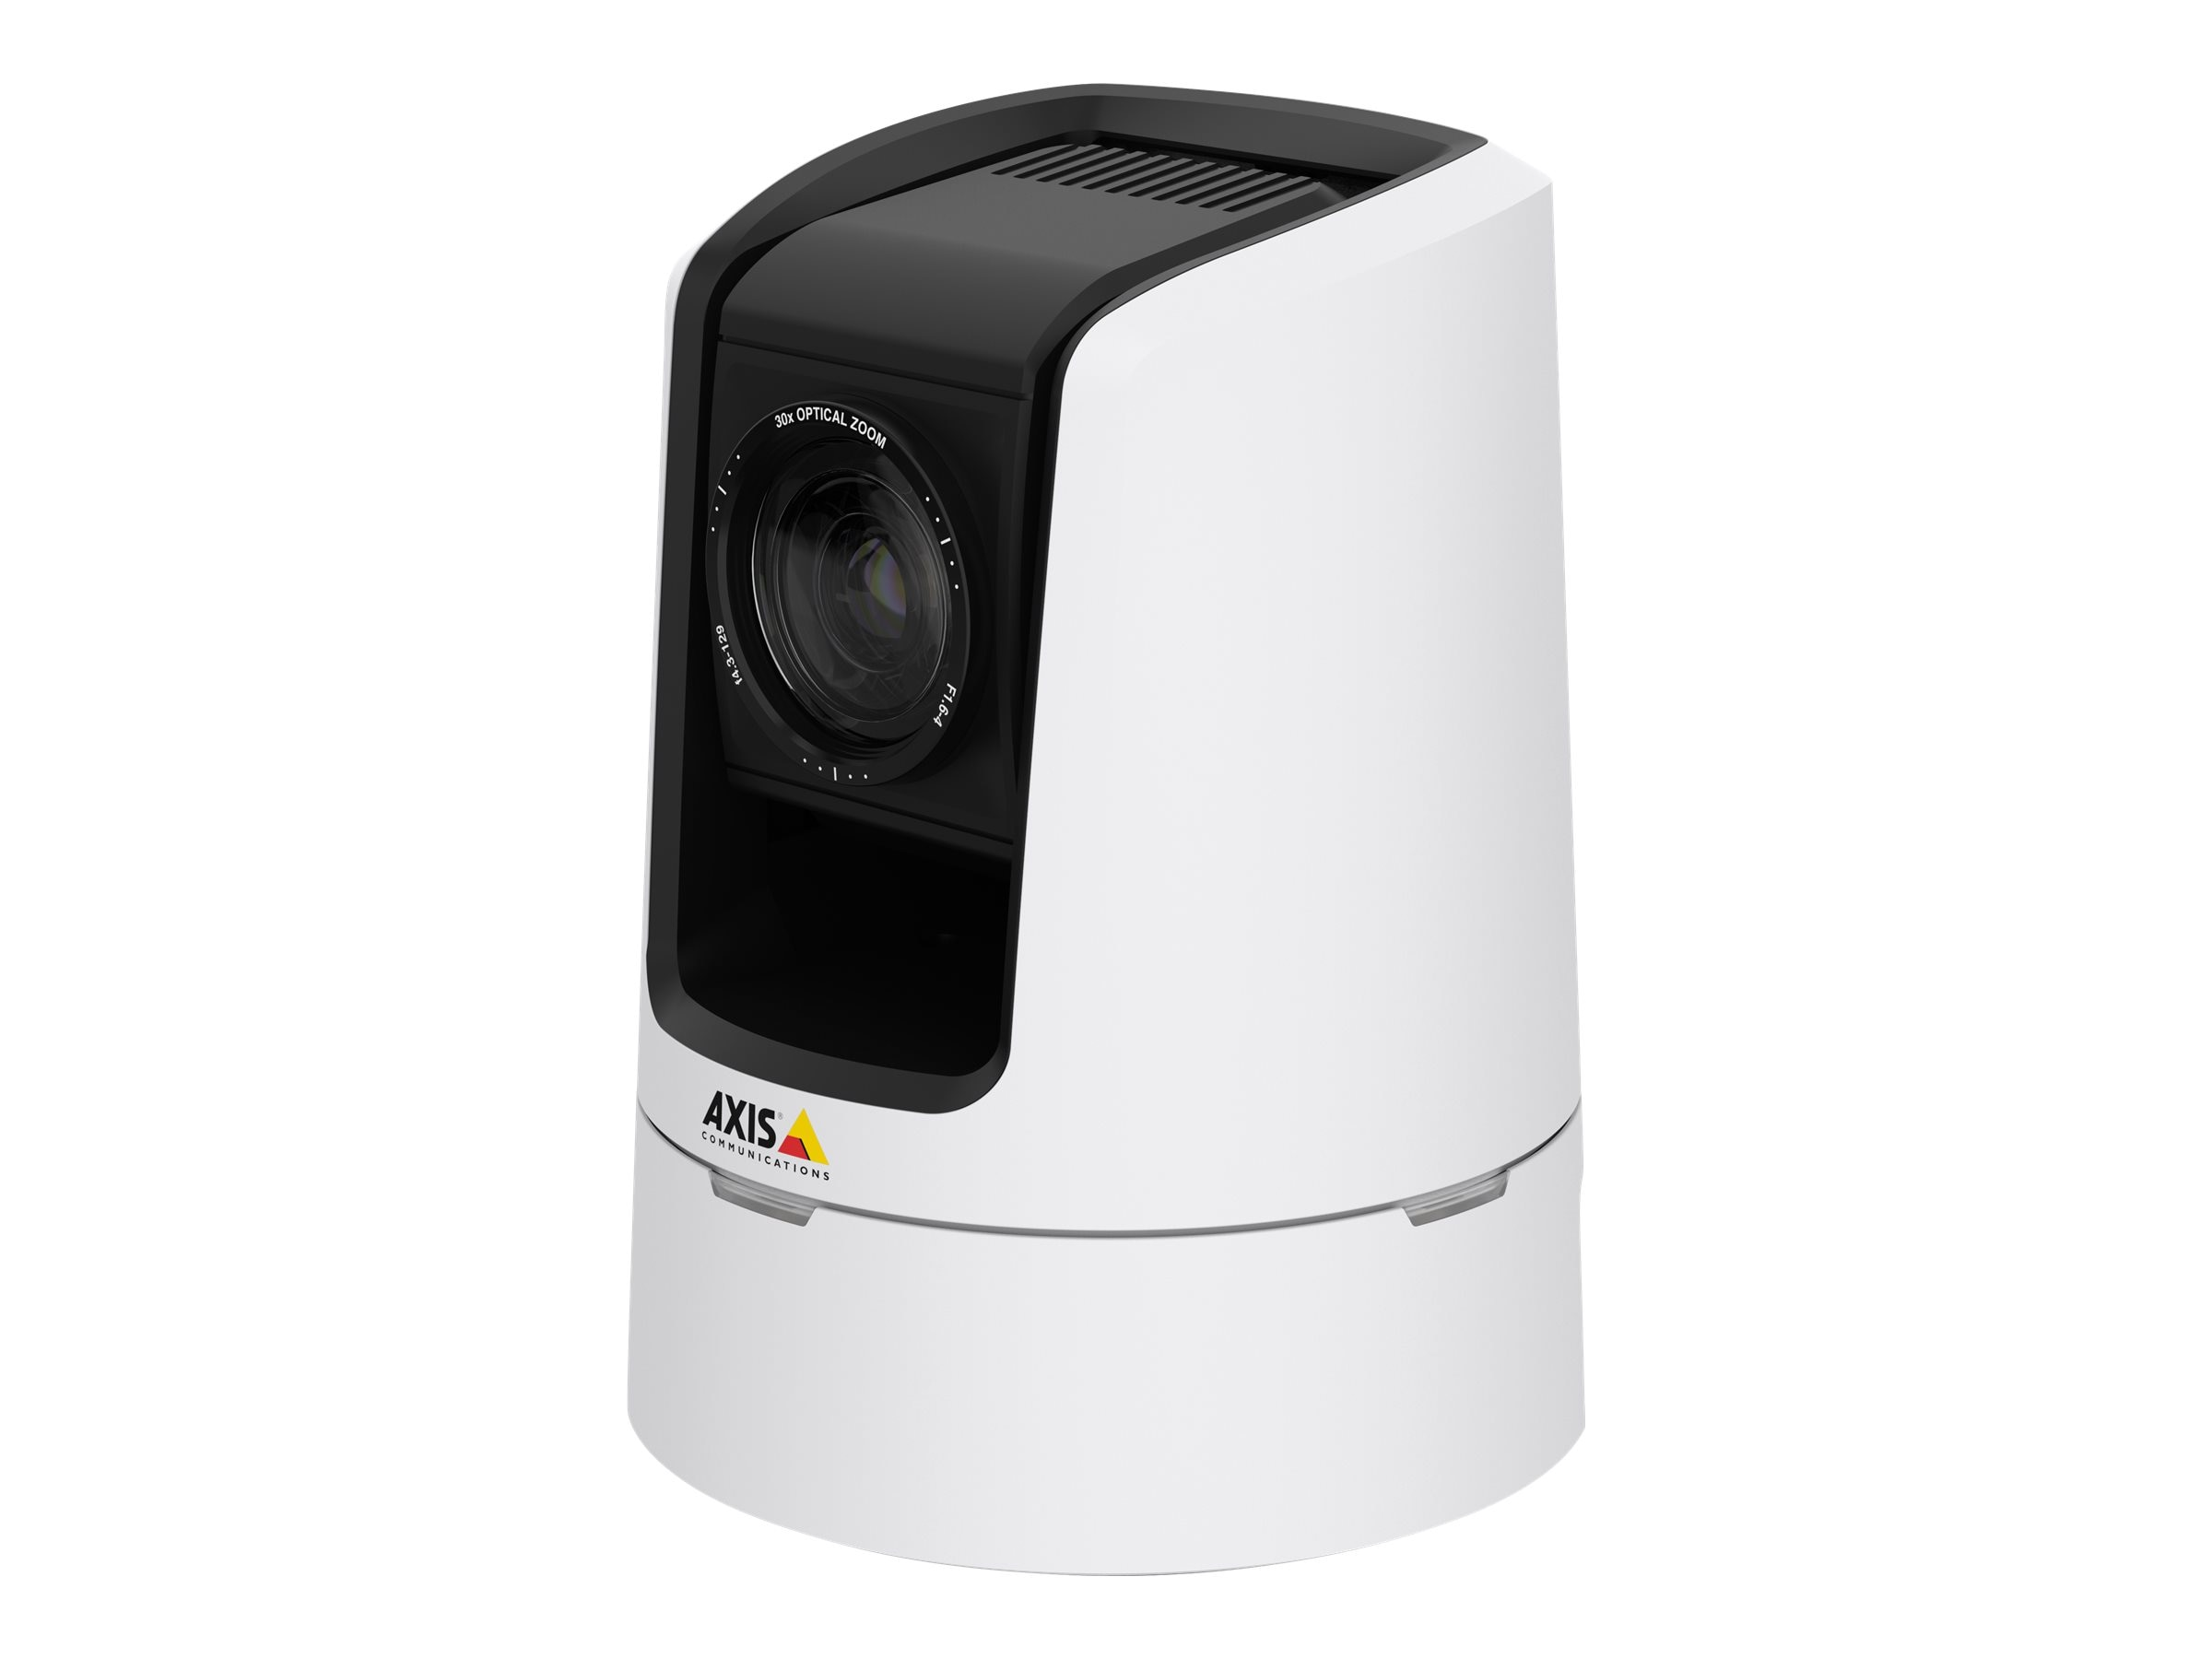 Axis V5914 60HZ PTZ Network Camera, 0632-004, 22902267, Cameras - Security